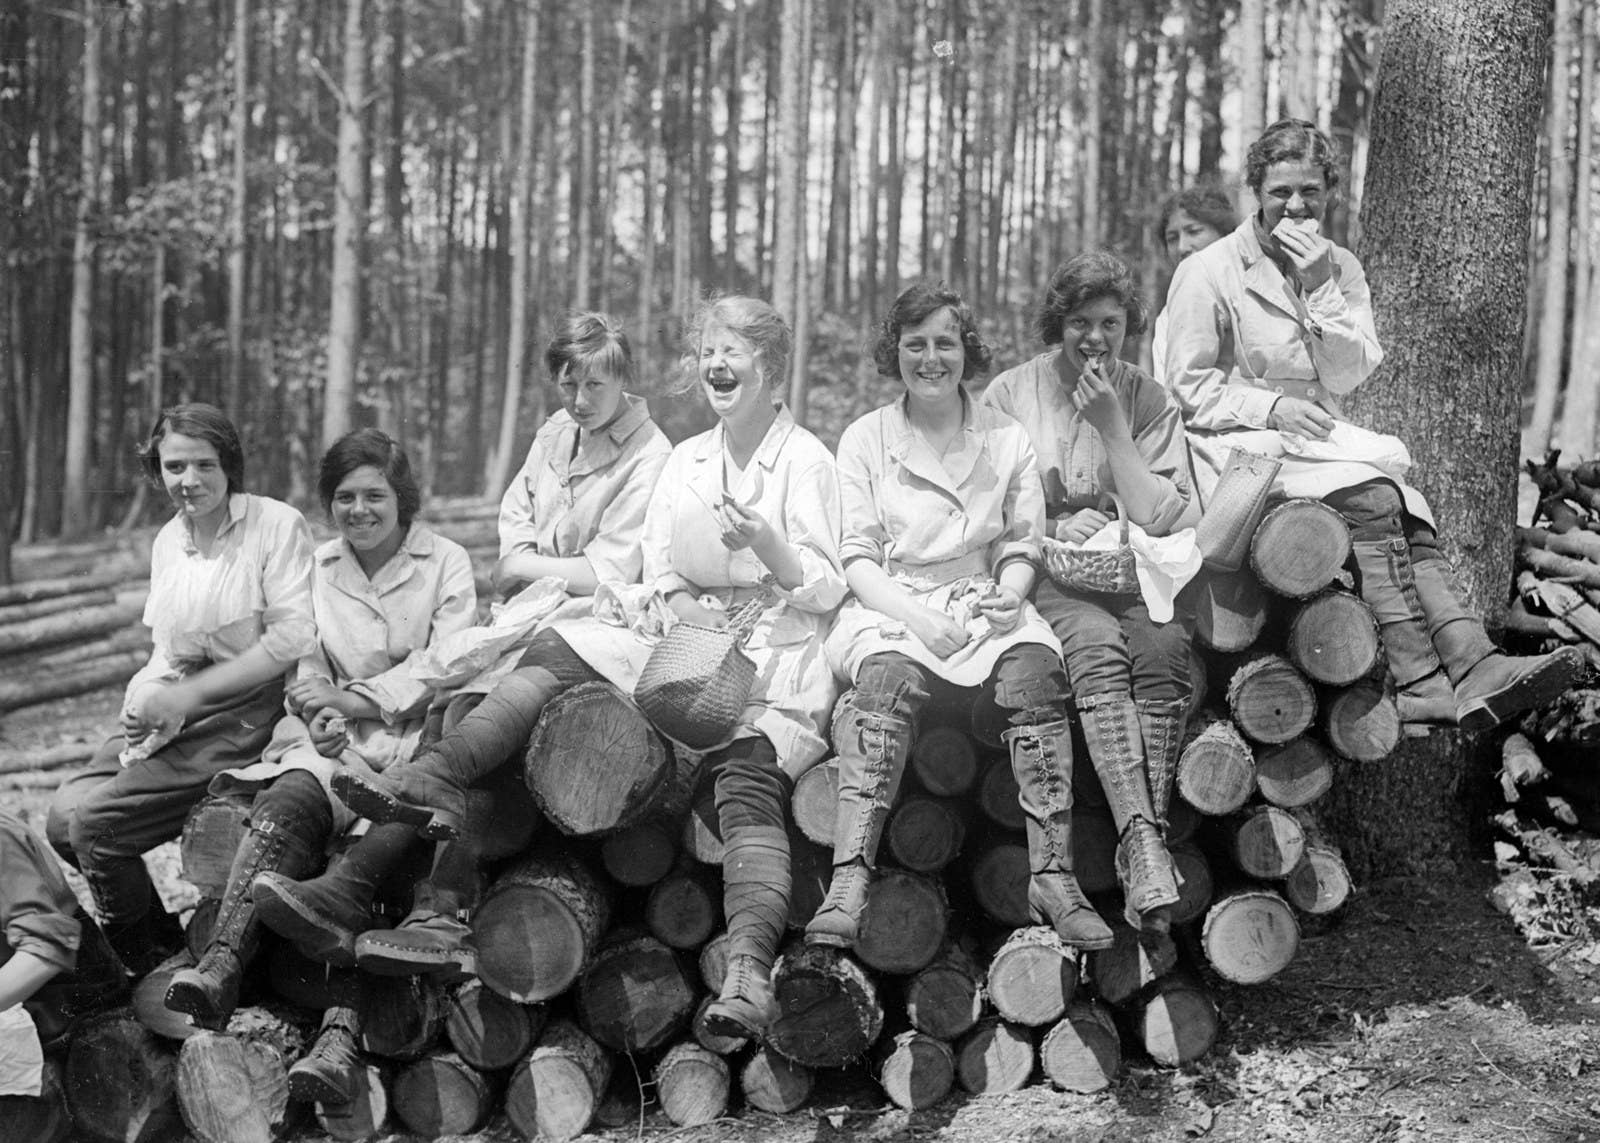 Women forestry workers sit on a pile of logs enjoying their lunches, 1918.